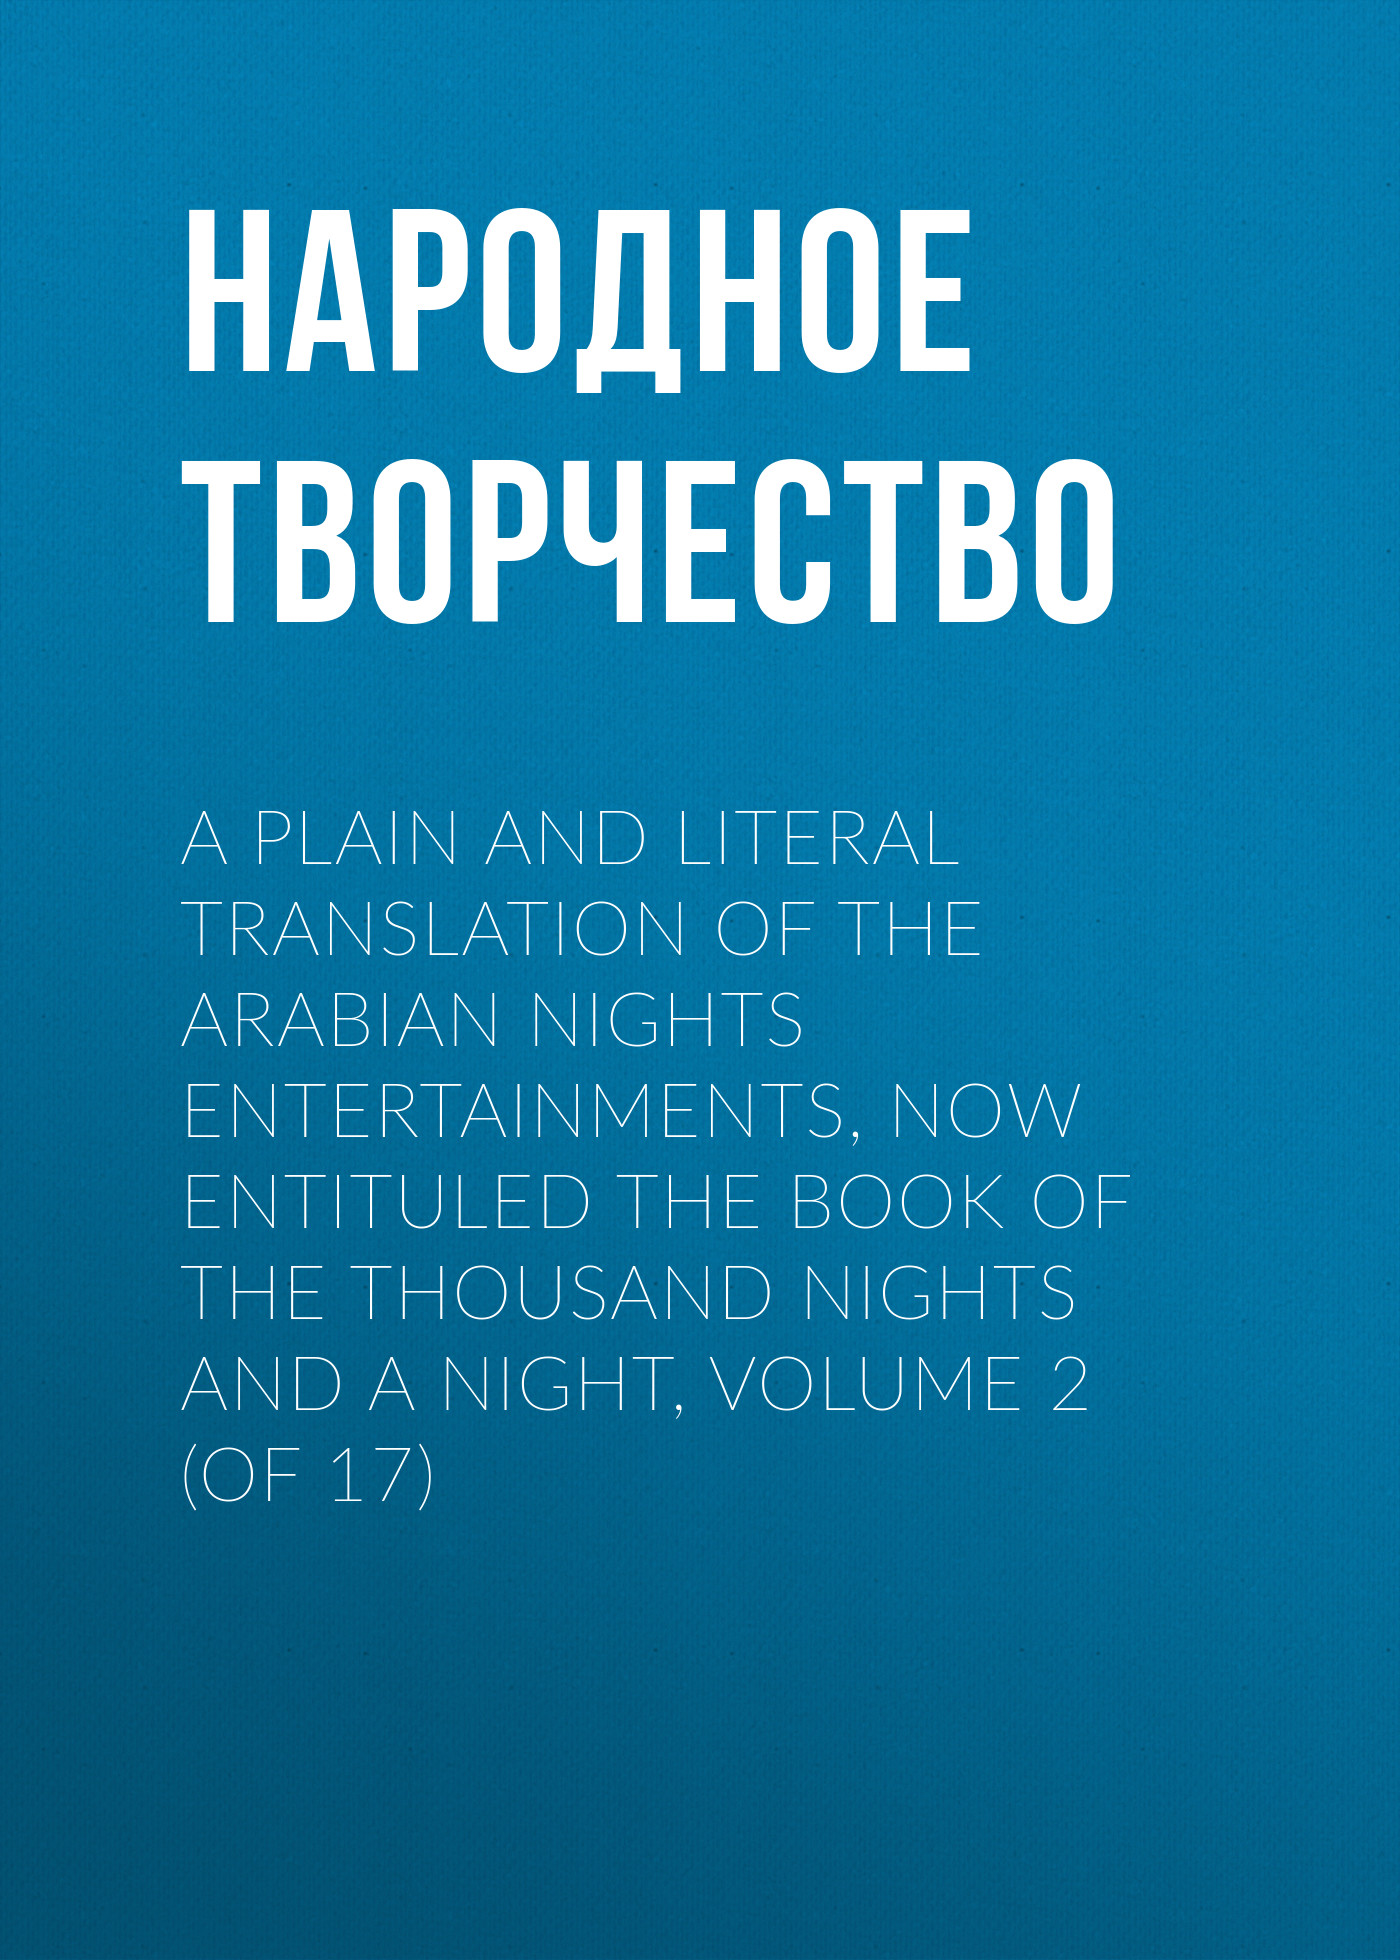 Народное творчество A plain and literal translation of the Arabian nights entertainments, now entituled The Book of the Thousand Nights and a Night, Volume 2 (of 17)